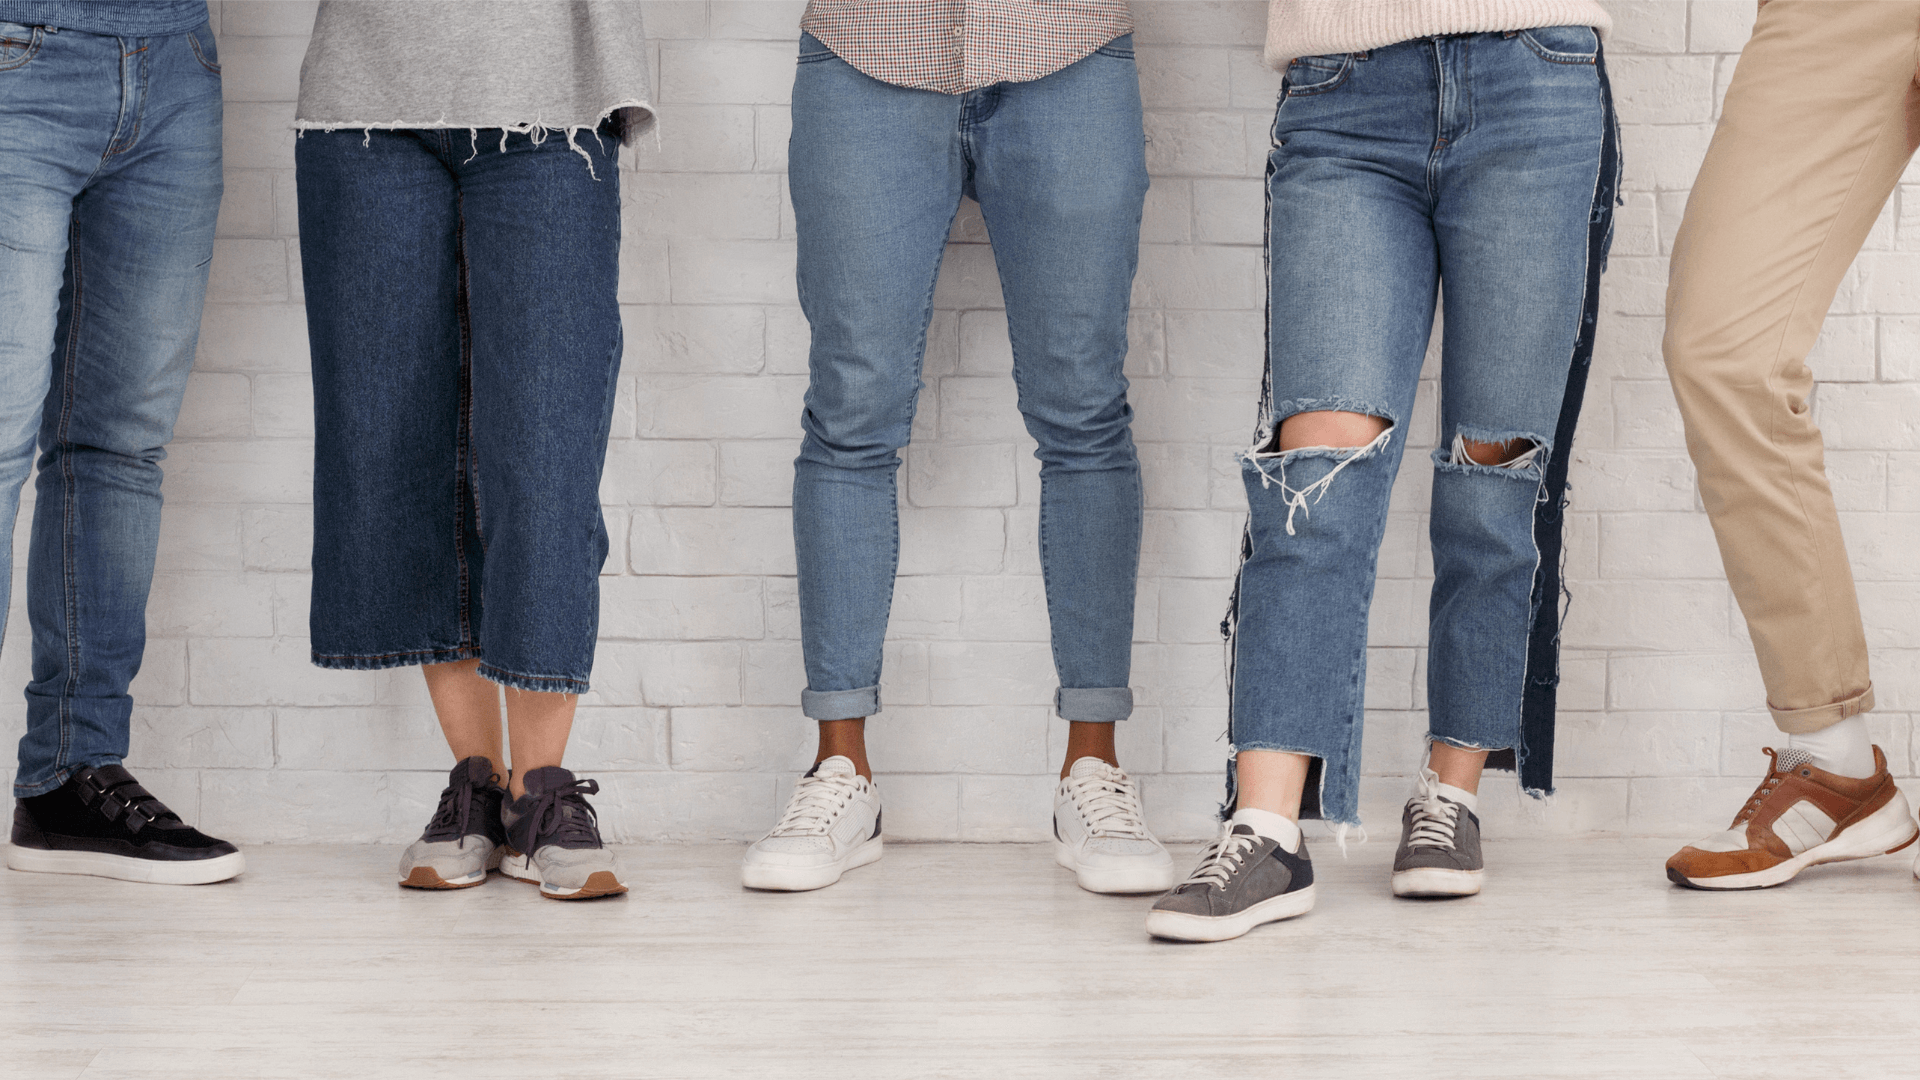 Legs of Friends Showing Different Jean Types